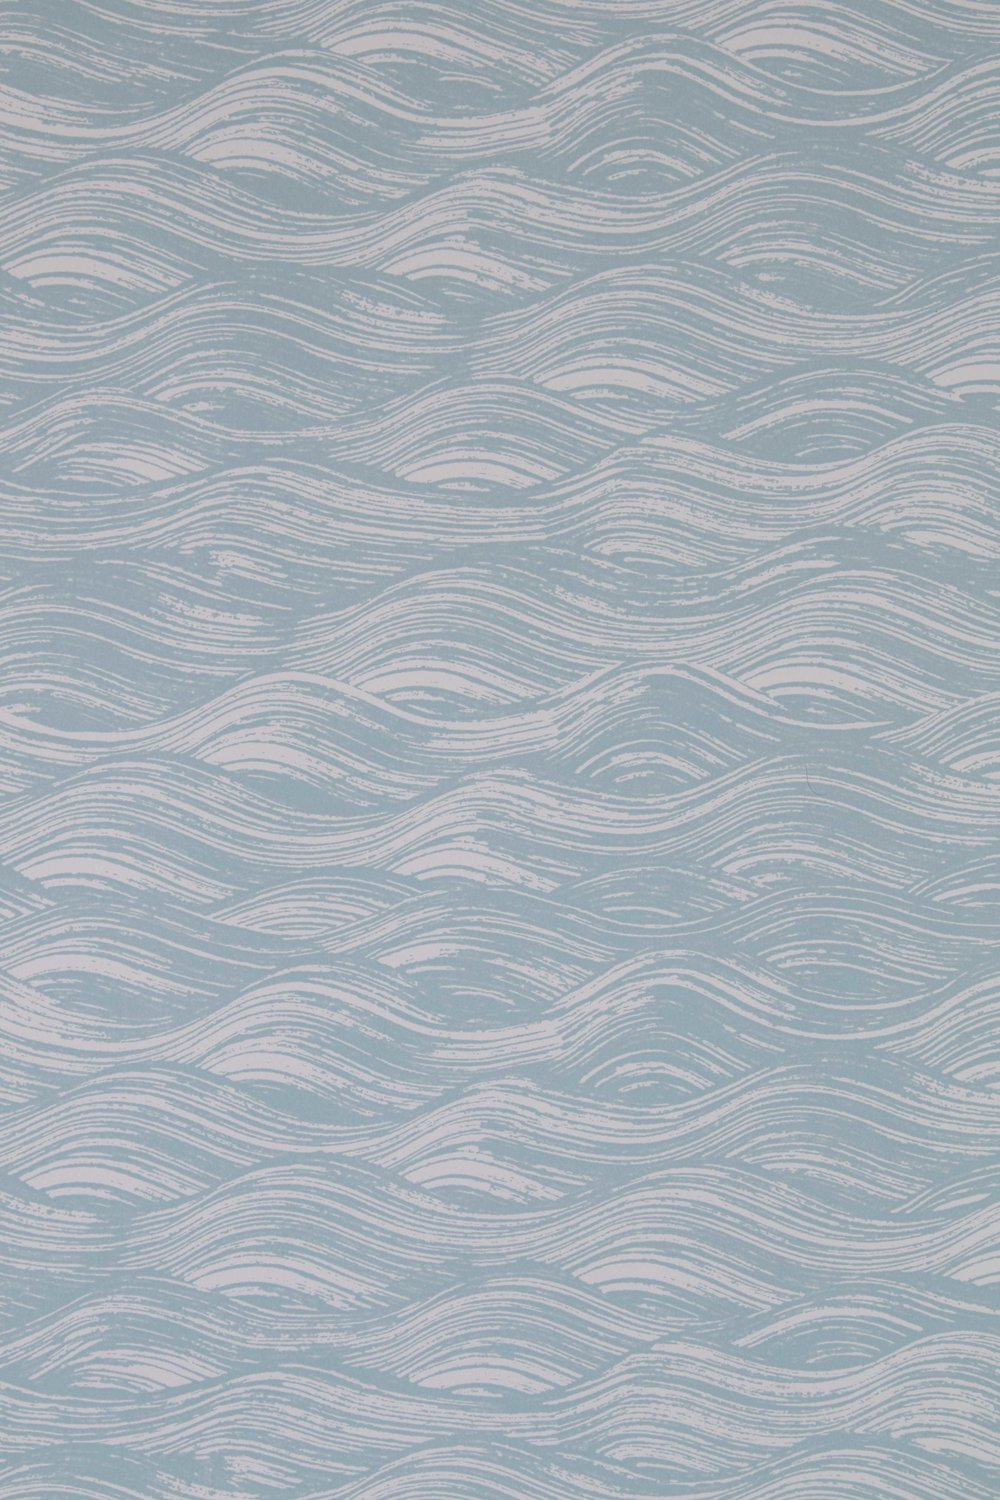 Painted Wave in Celadon, SL160-02